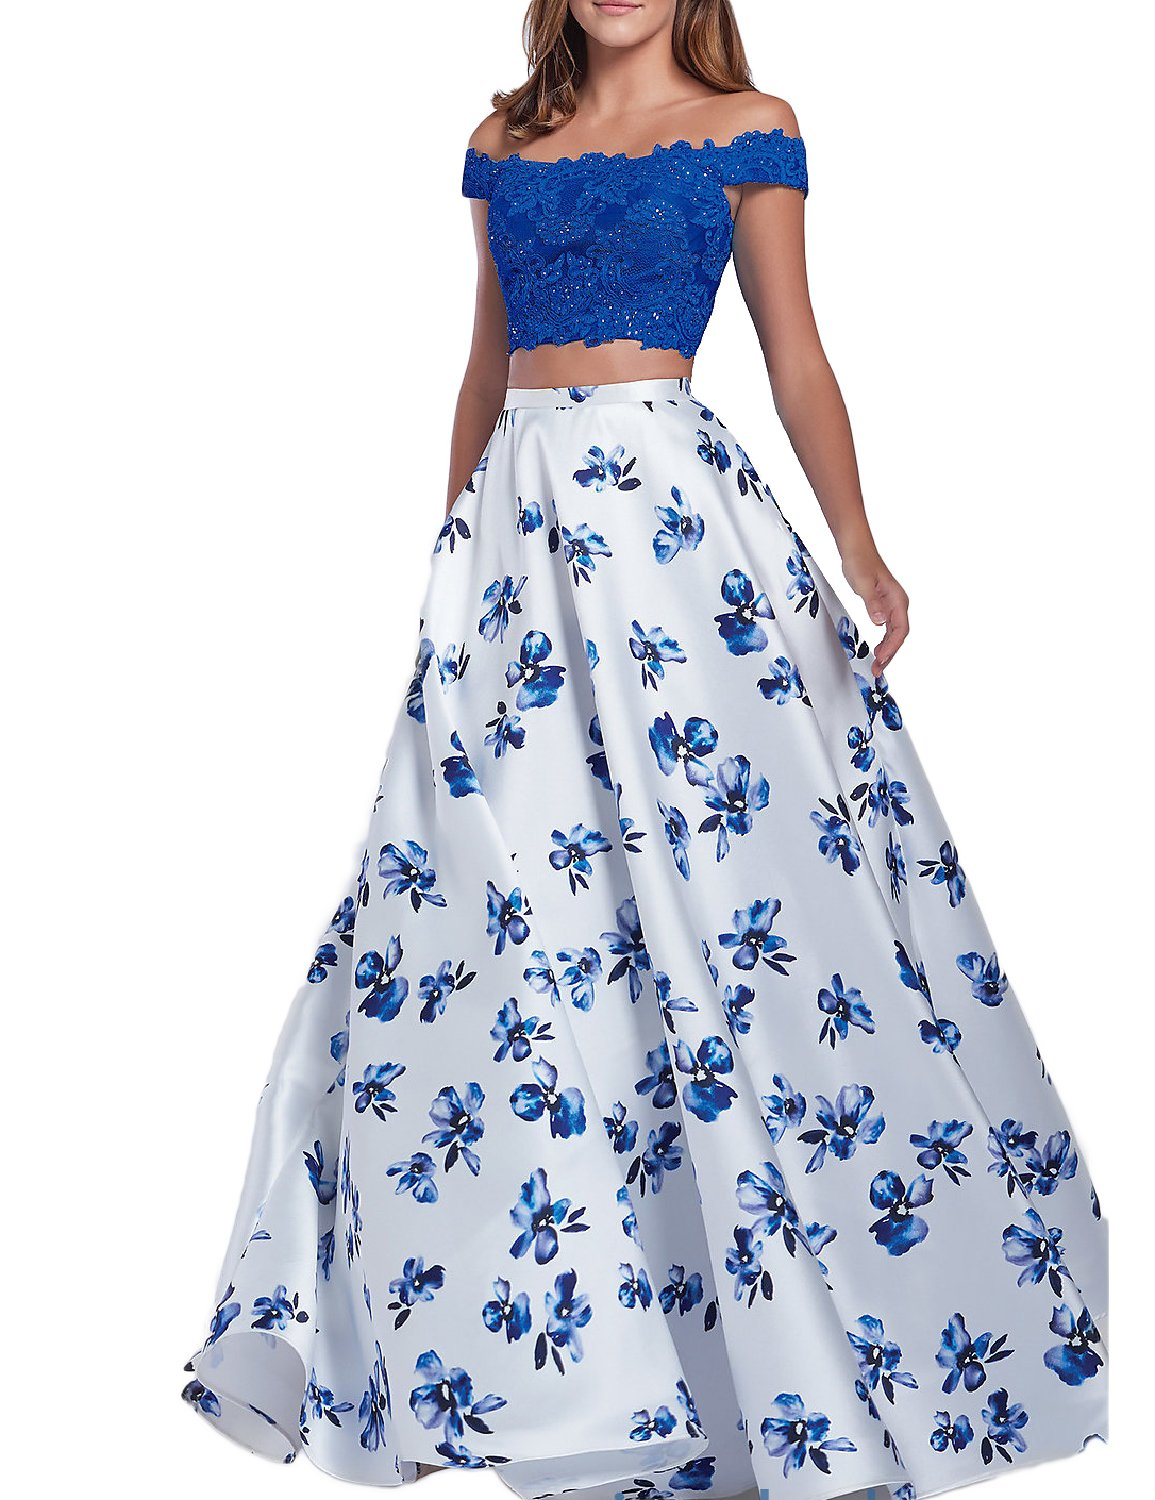 YSMei Women's 2 Piece Floral Print Prom Homecoming Dress Off shoulder Long Party Gown Royal Blue Custom by YSMei